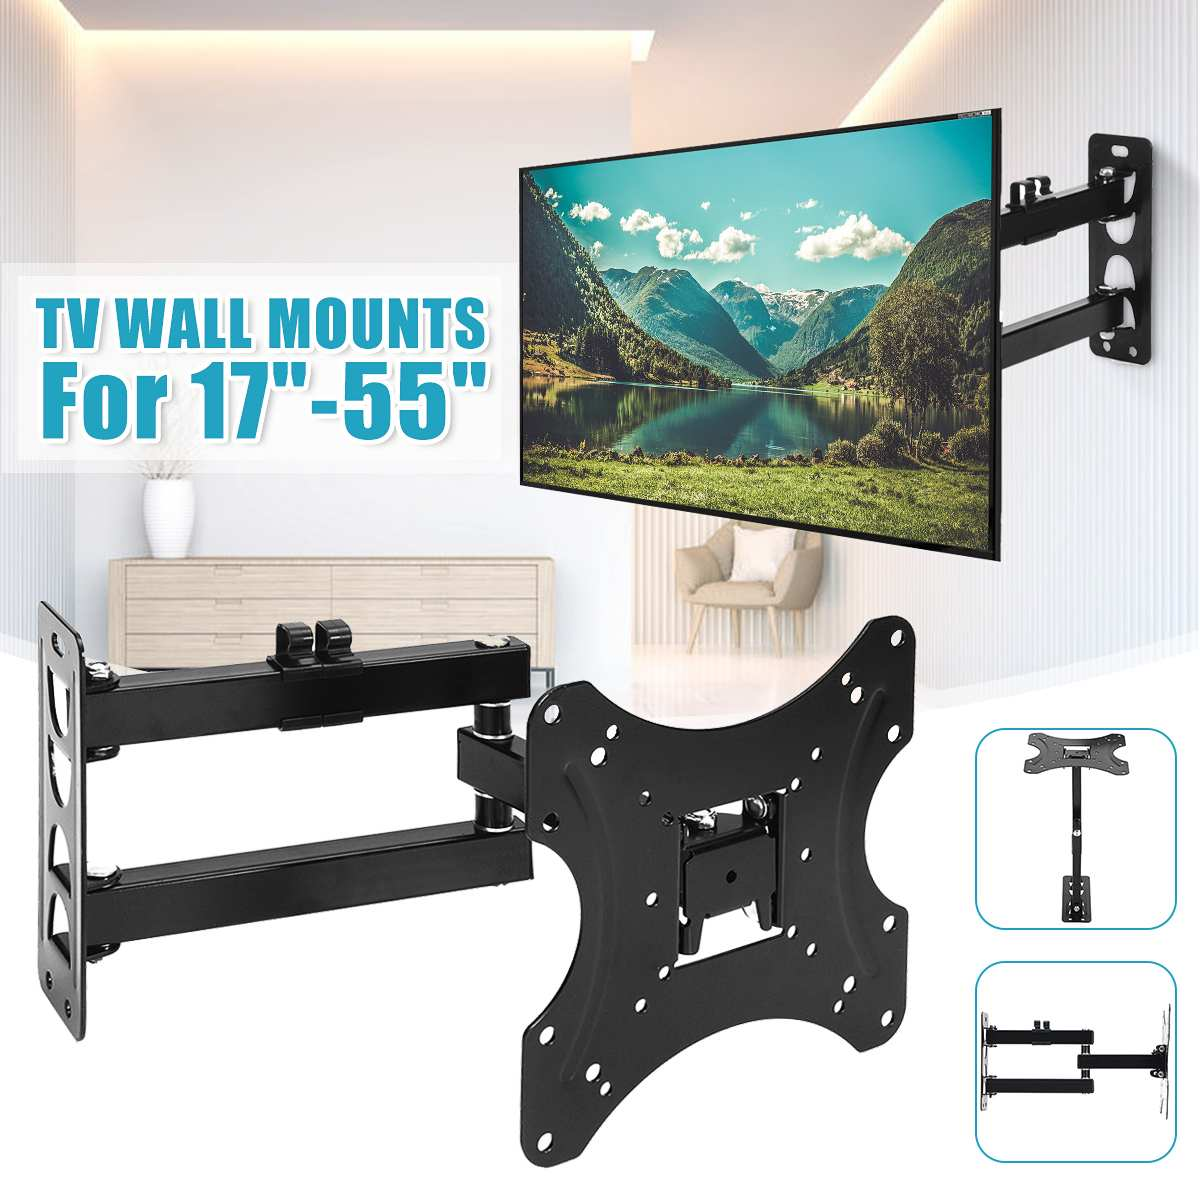 1Pcs Full Motion TV Wall Mount 180 Degree Rotate Bracket Support 17-55Inch LED LCD Flat Screen Universal Telescopic Rack